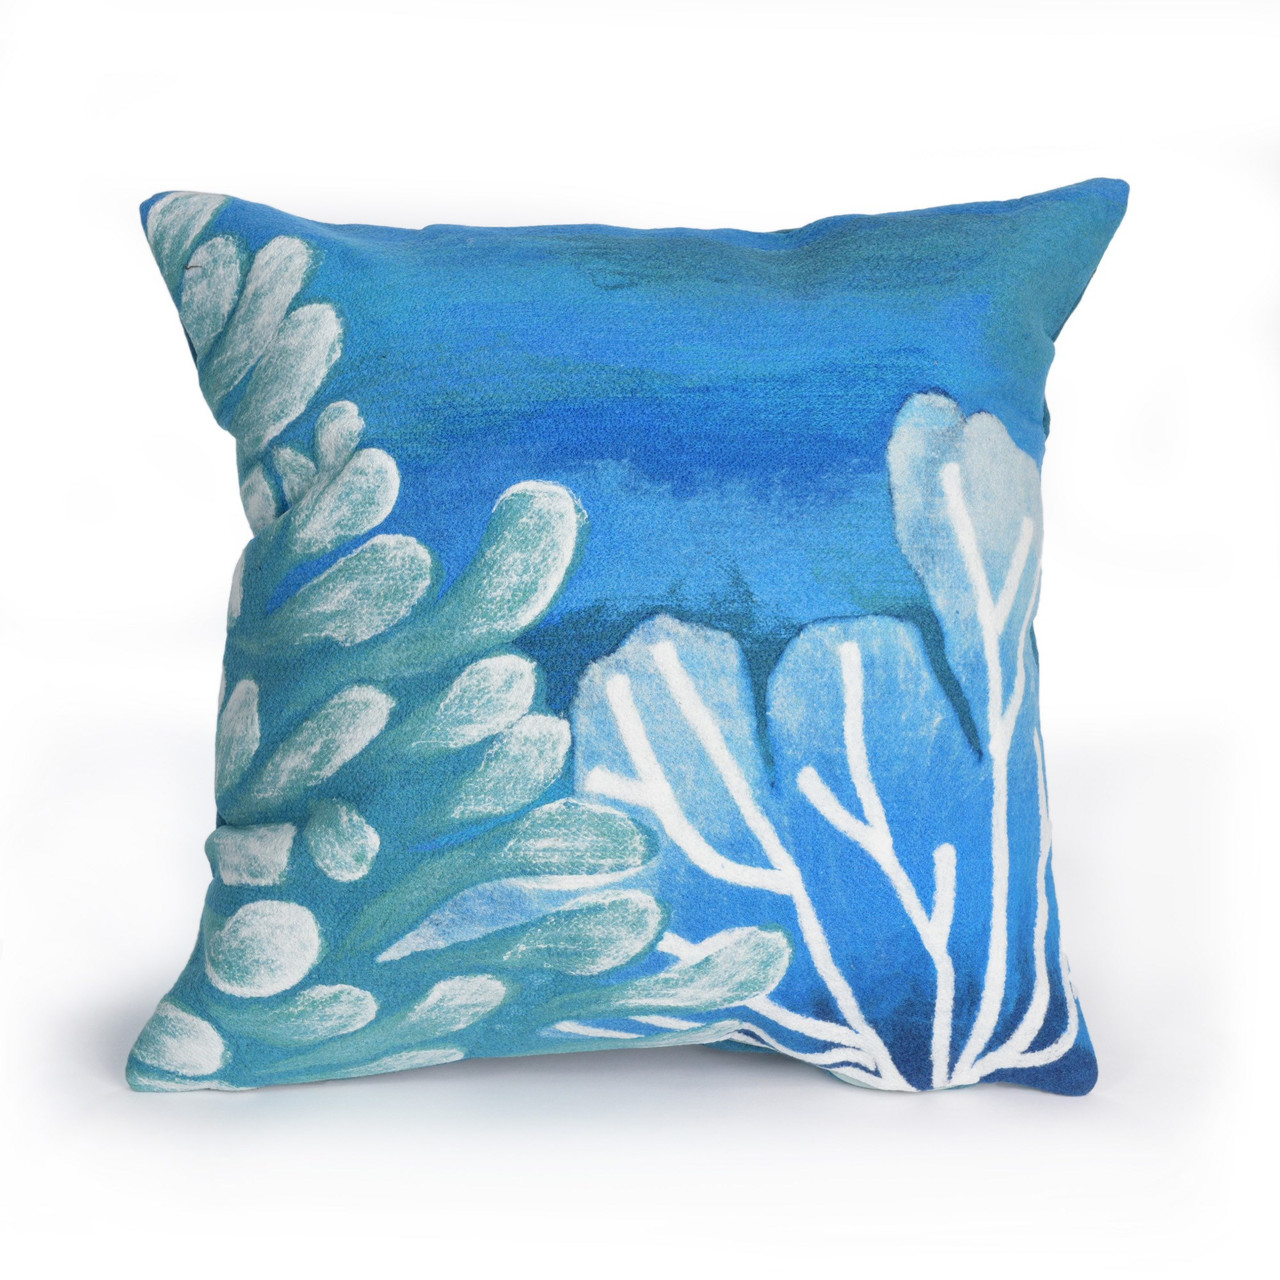 Visions Blue Reef Indoor/Outdoor Throw Pillow - Square